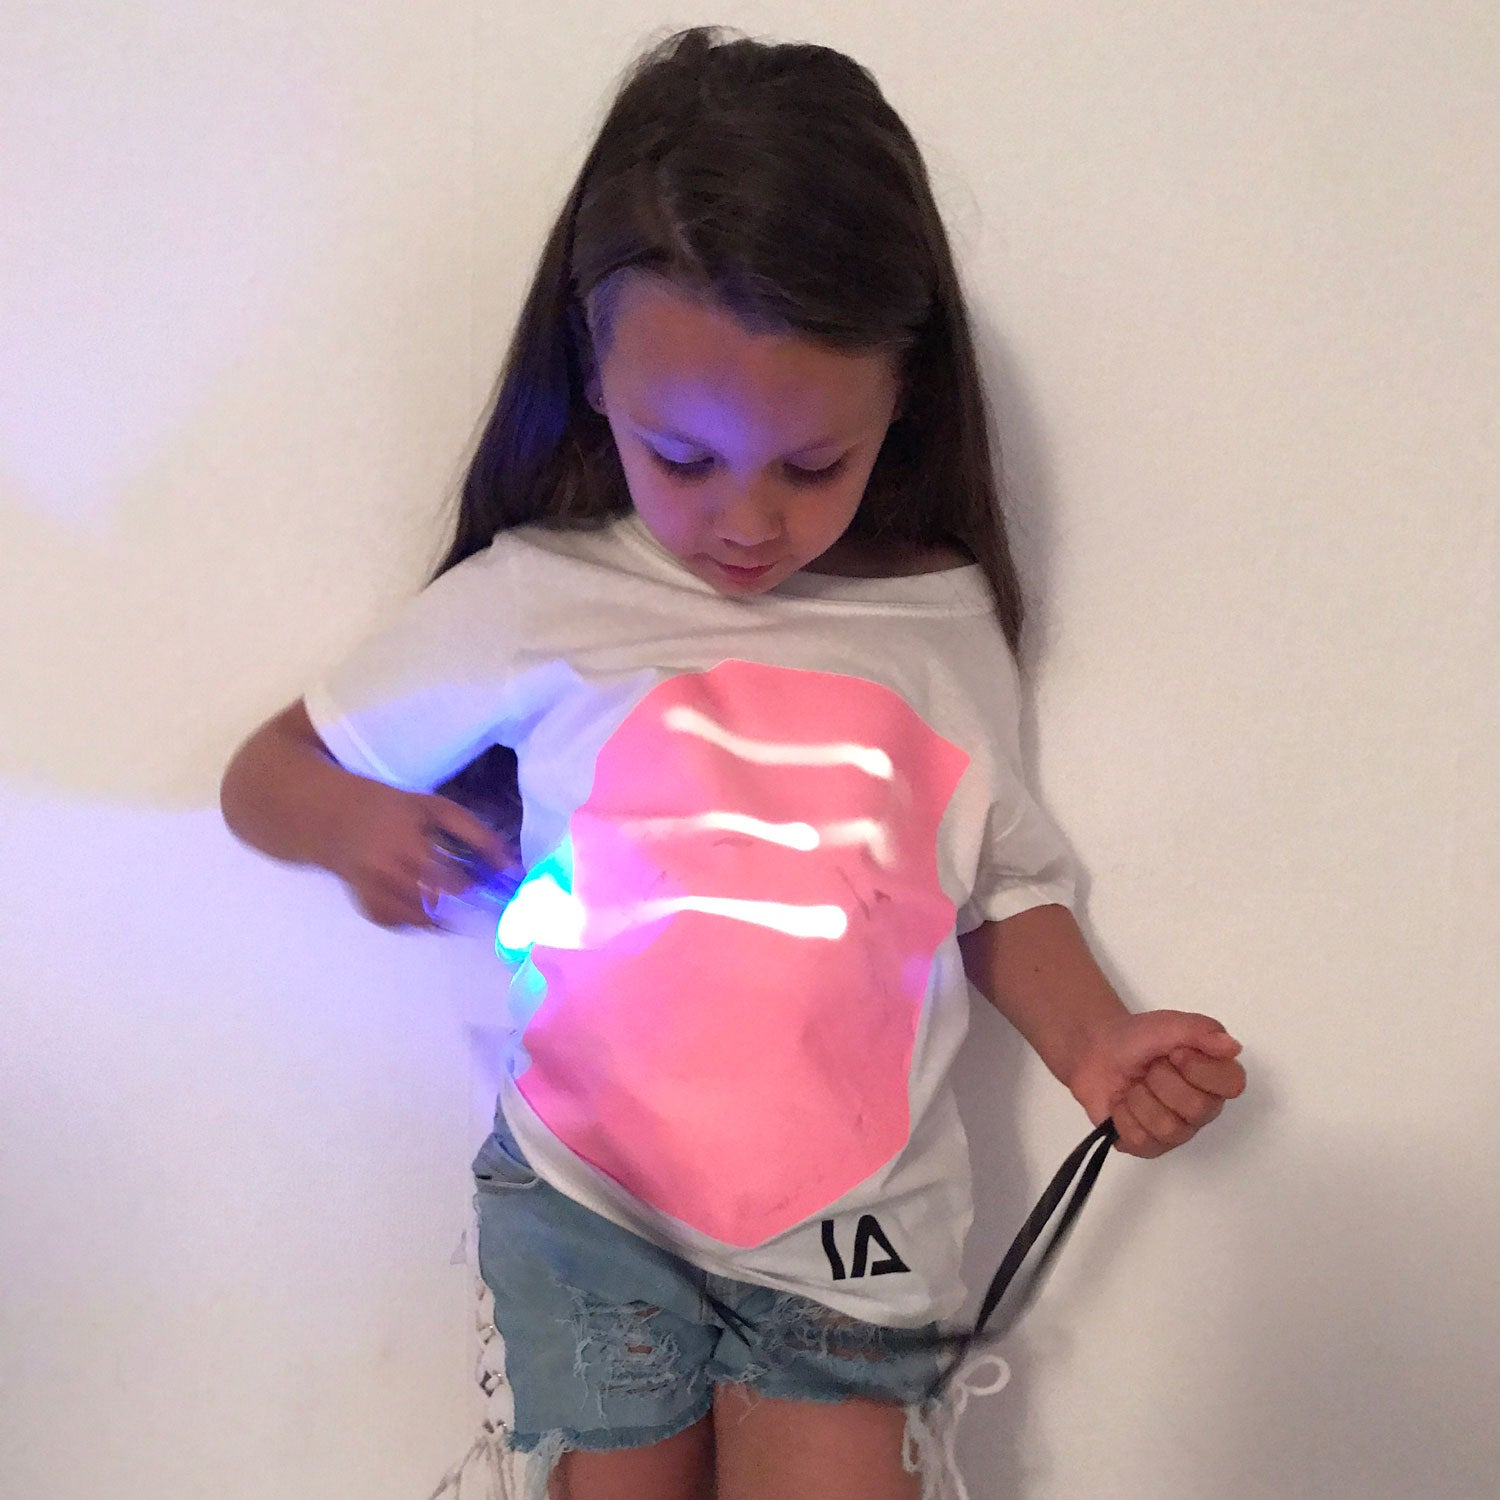 Kids Interactive Glow In The Dark T-shirt in White & Pink Glow